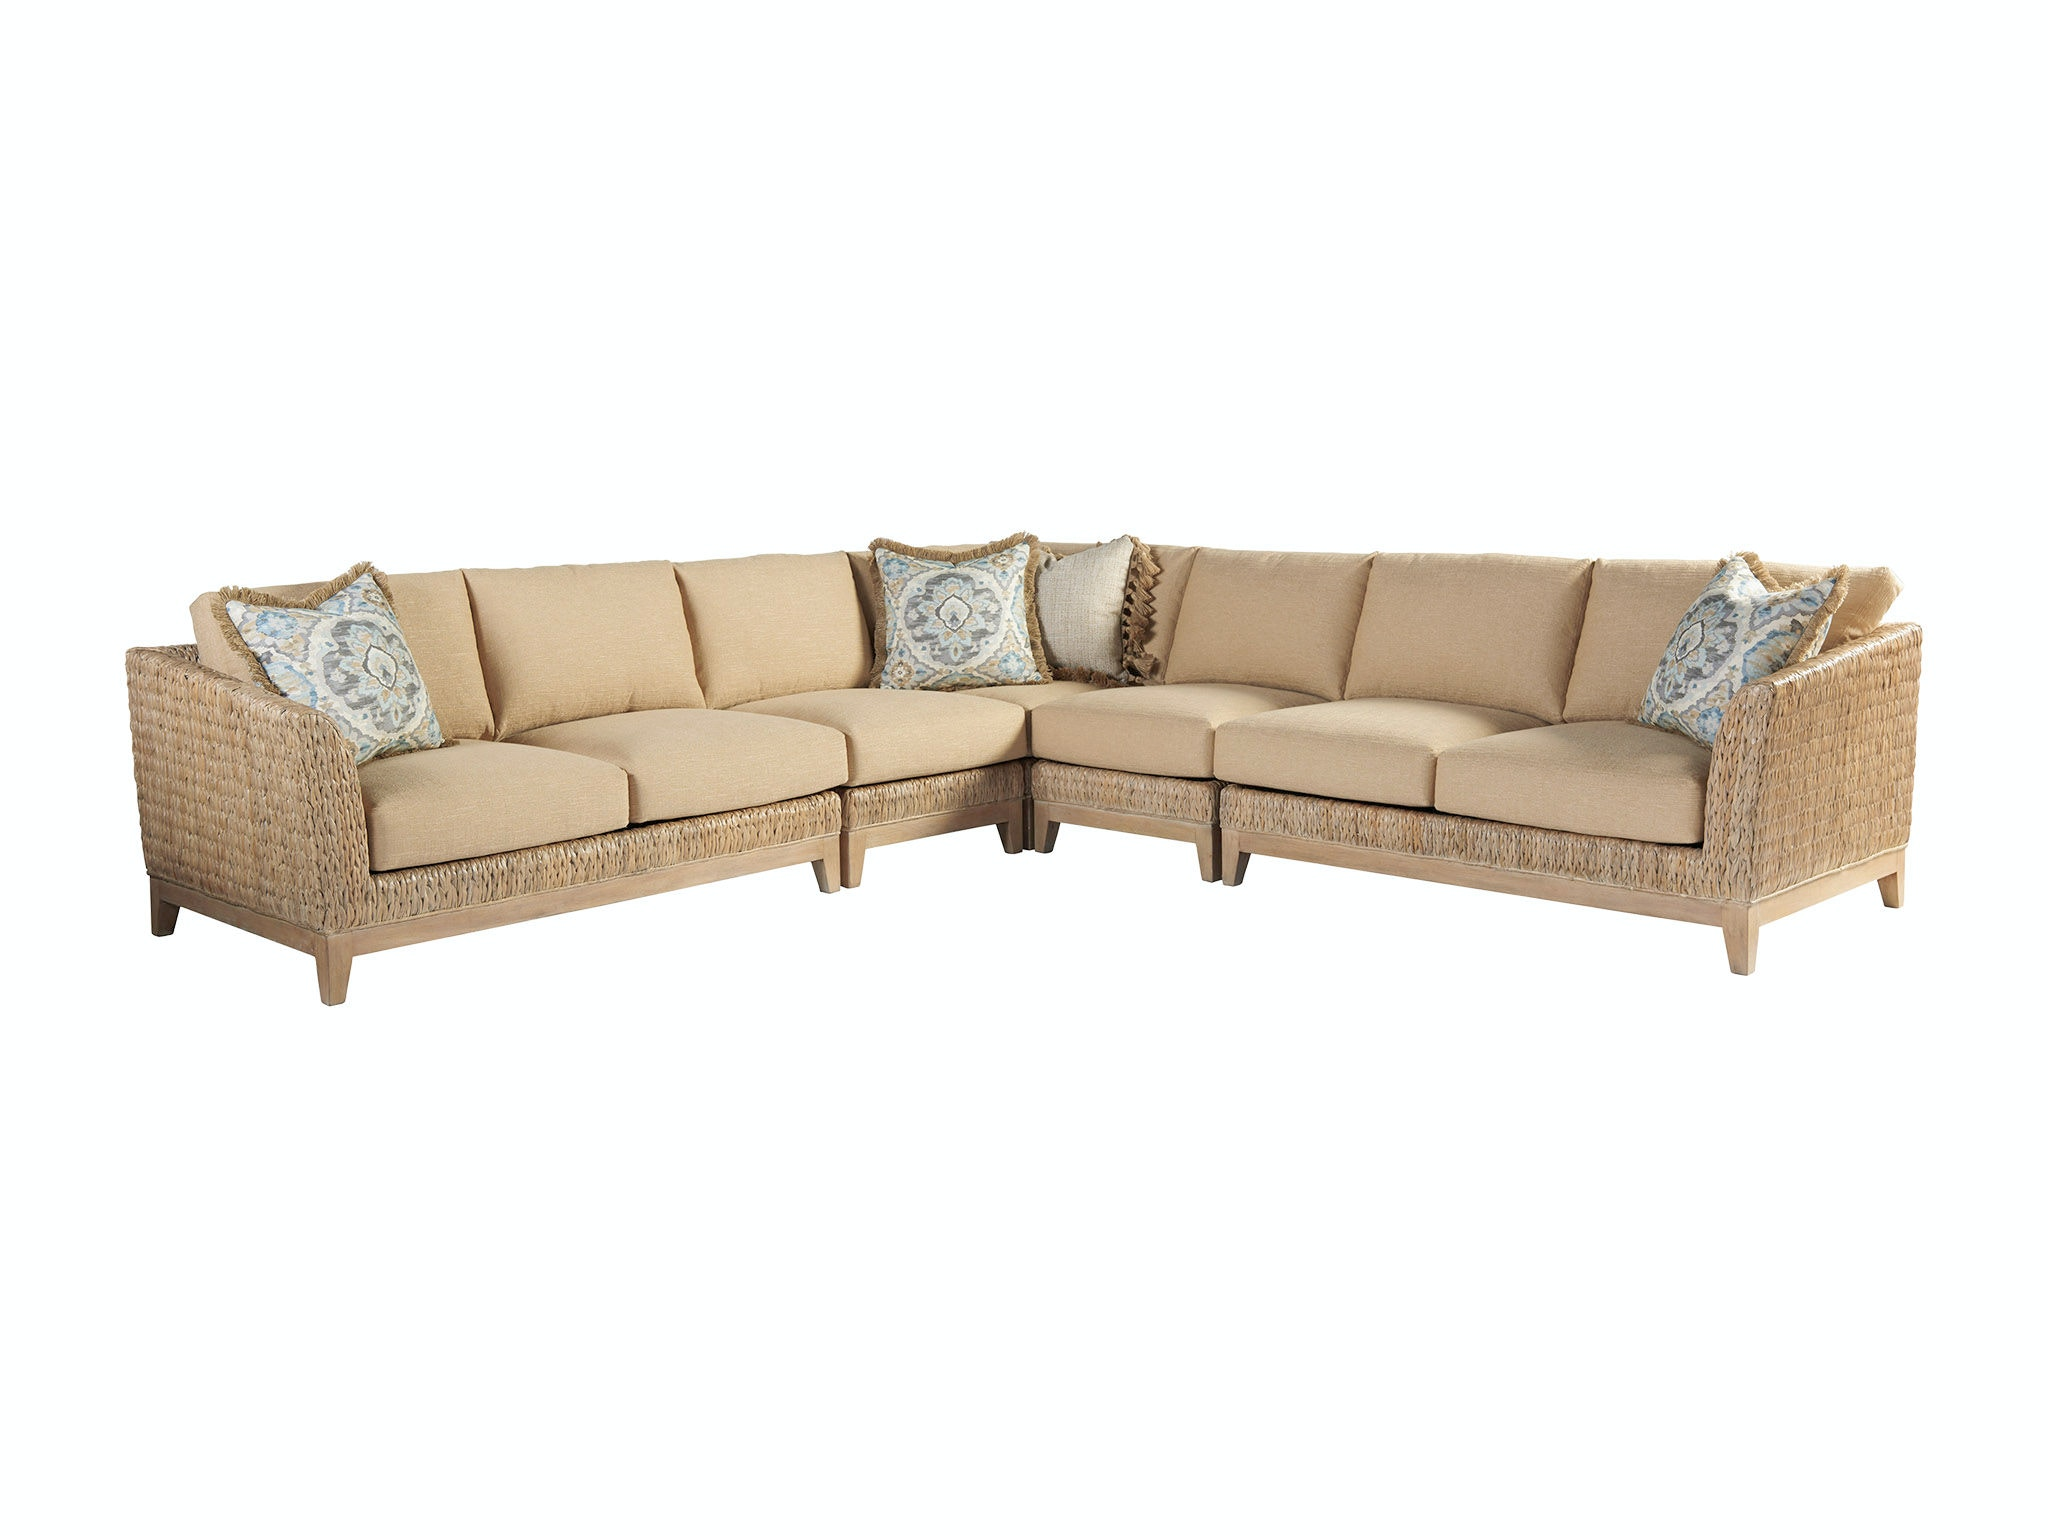 Exceptional Tommy Bahama Home Living Room Brisbane Sectional 1838 Sectional At Bacons  Furniture